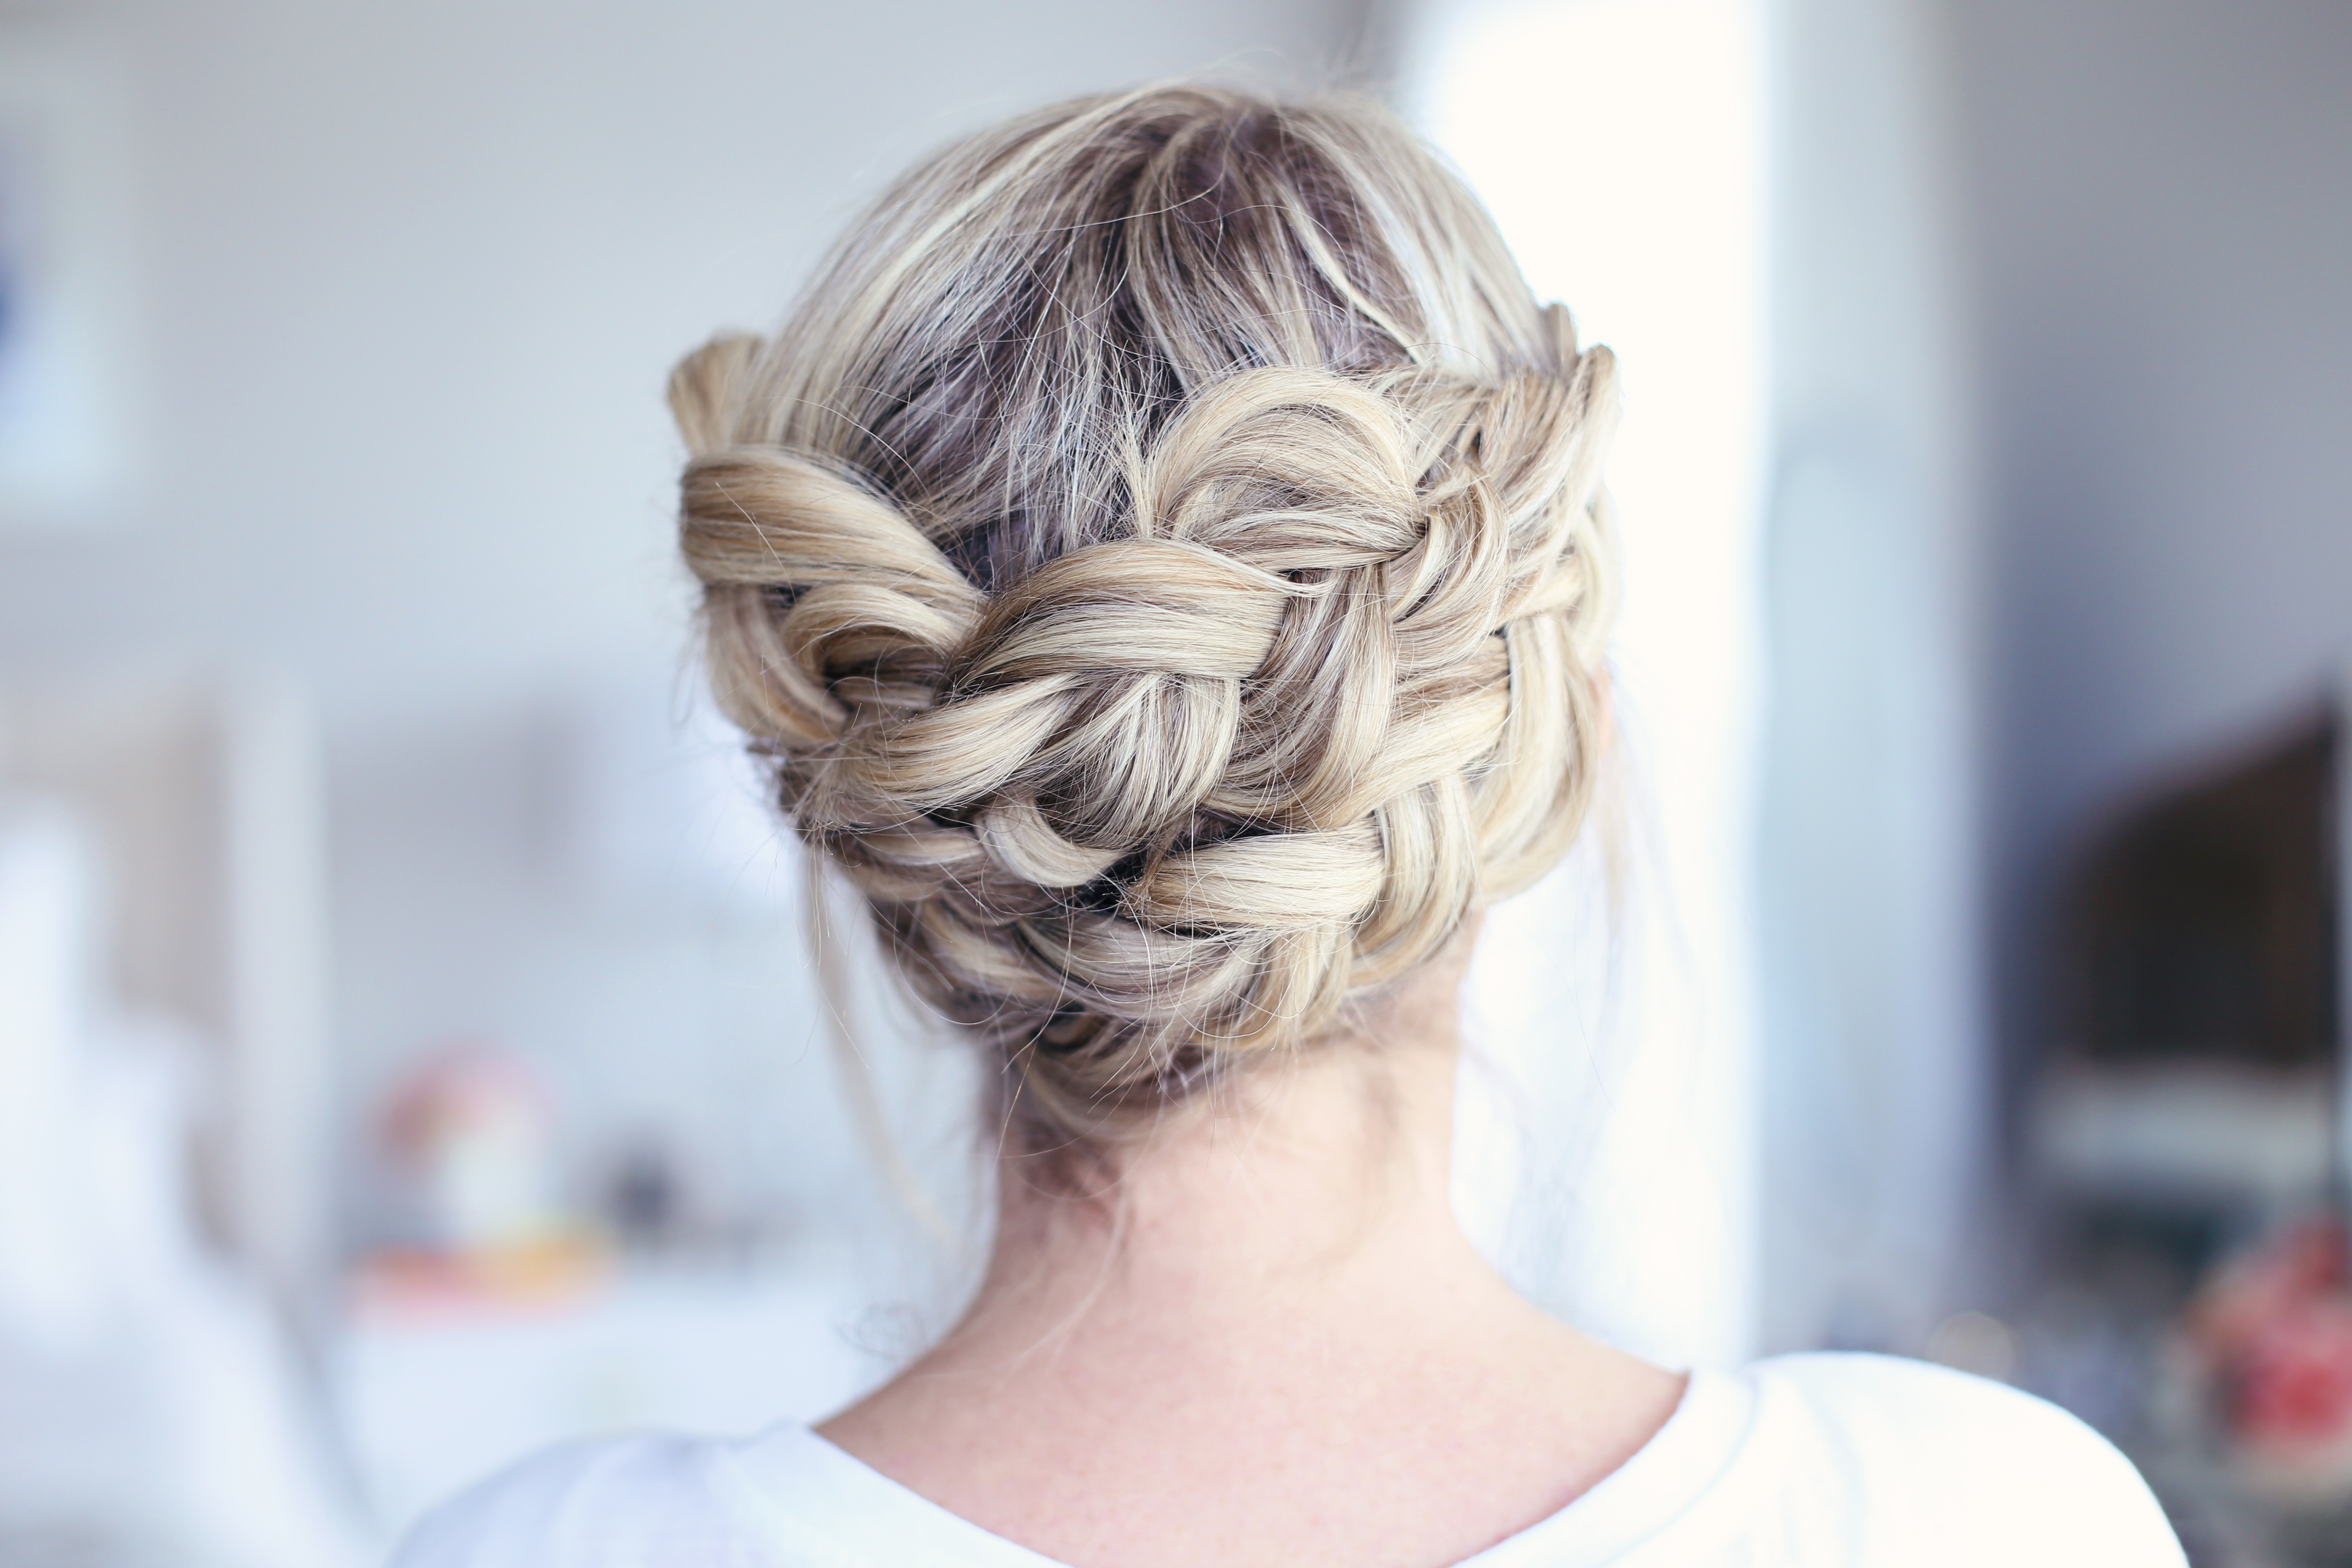 10 Braided Hairstyles For Long Hair: Cute Girls Hairstyles